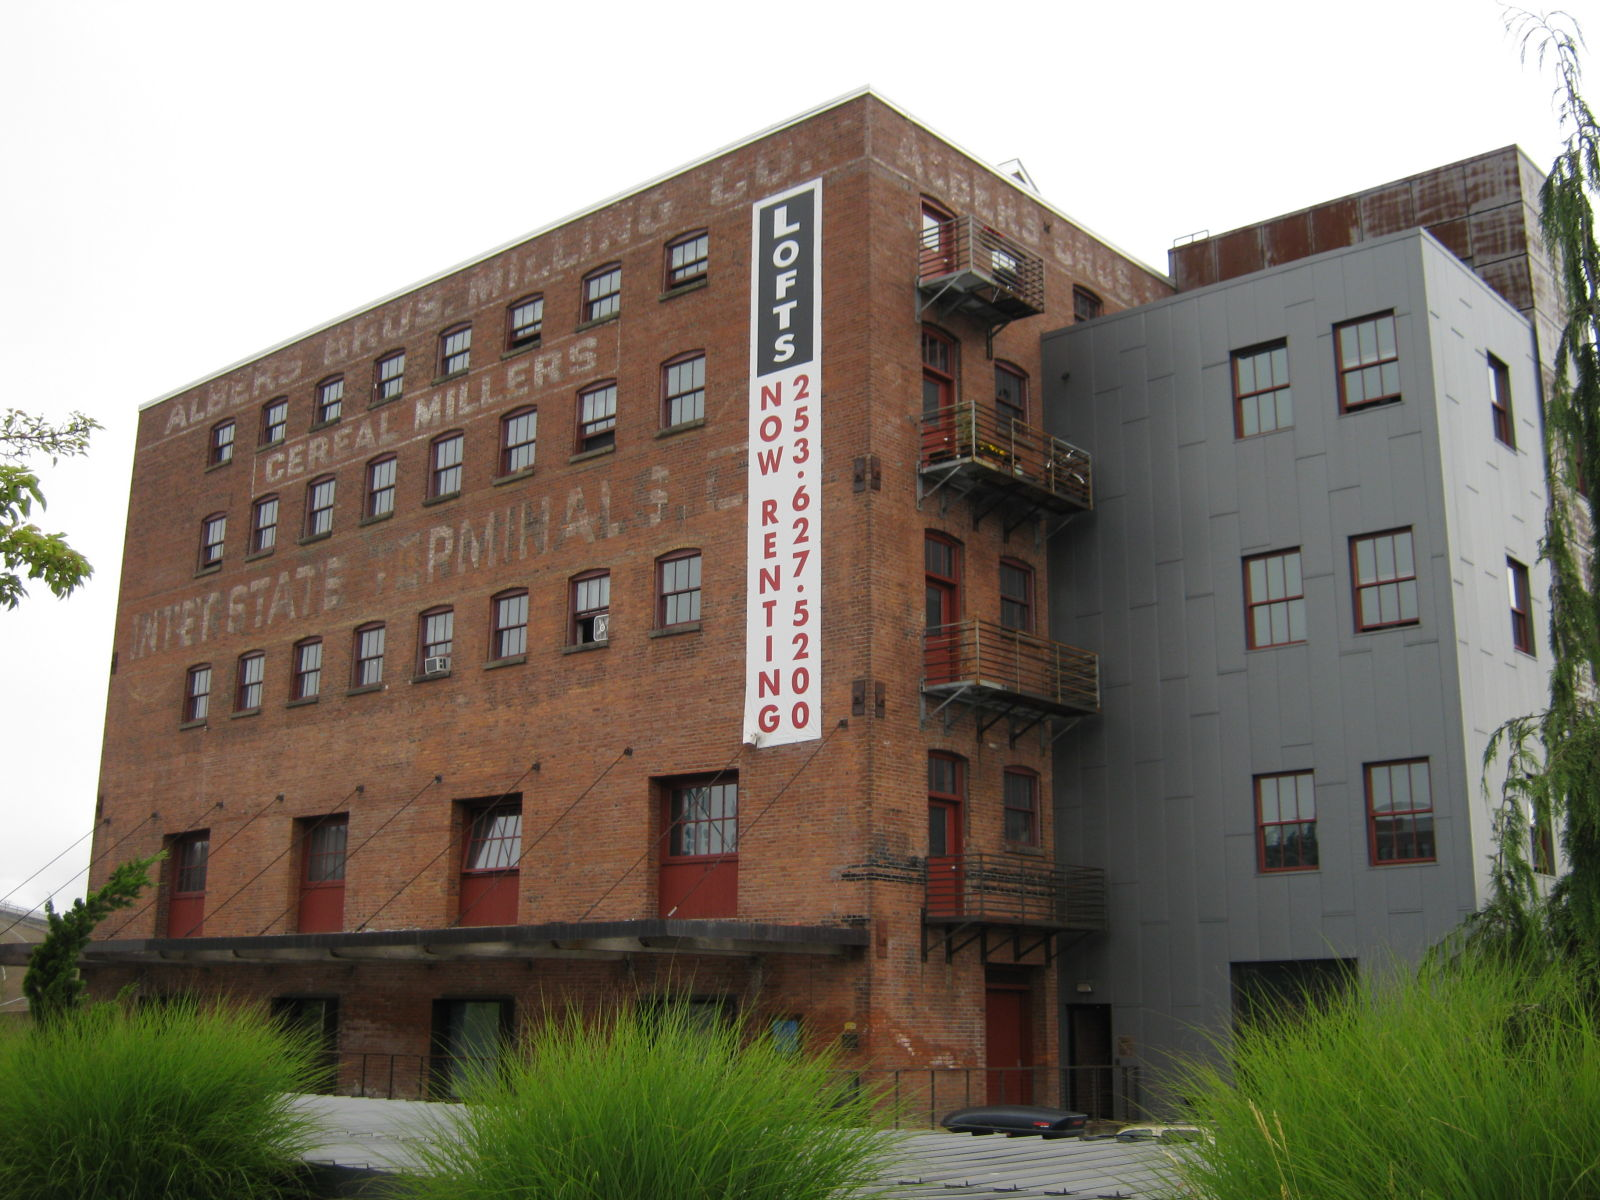 Albers Brothers Mill